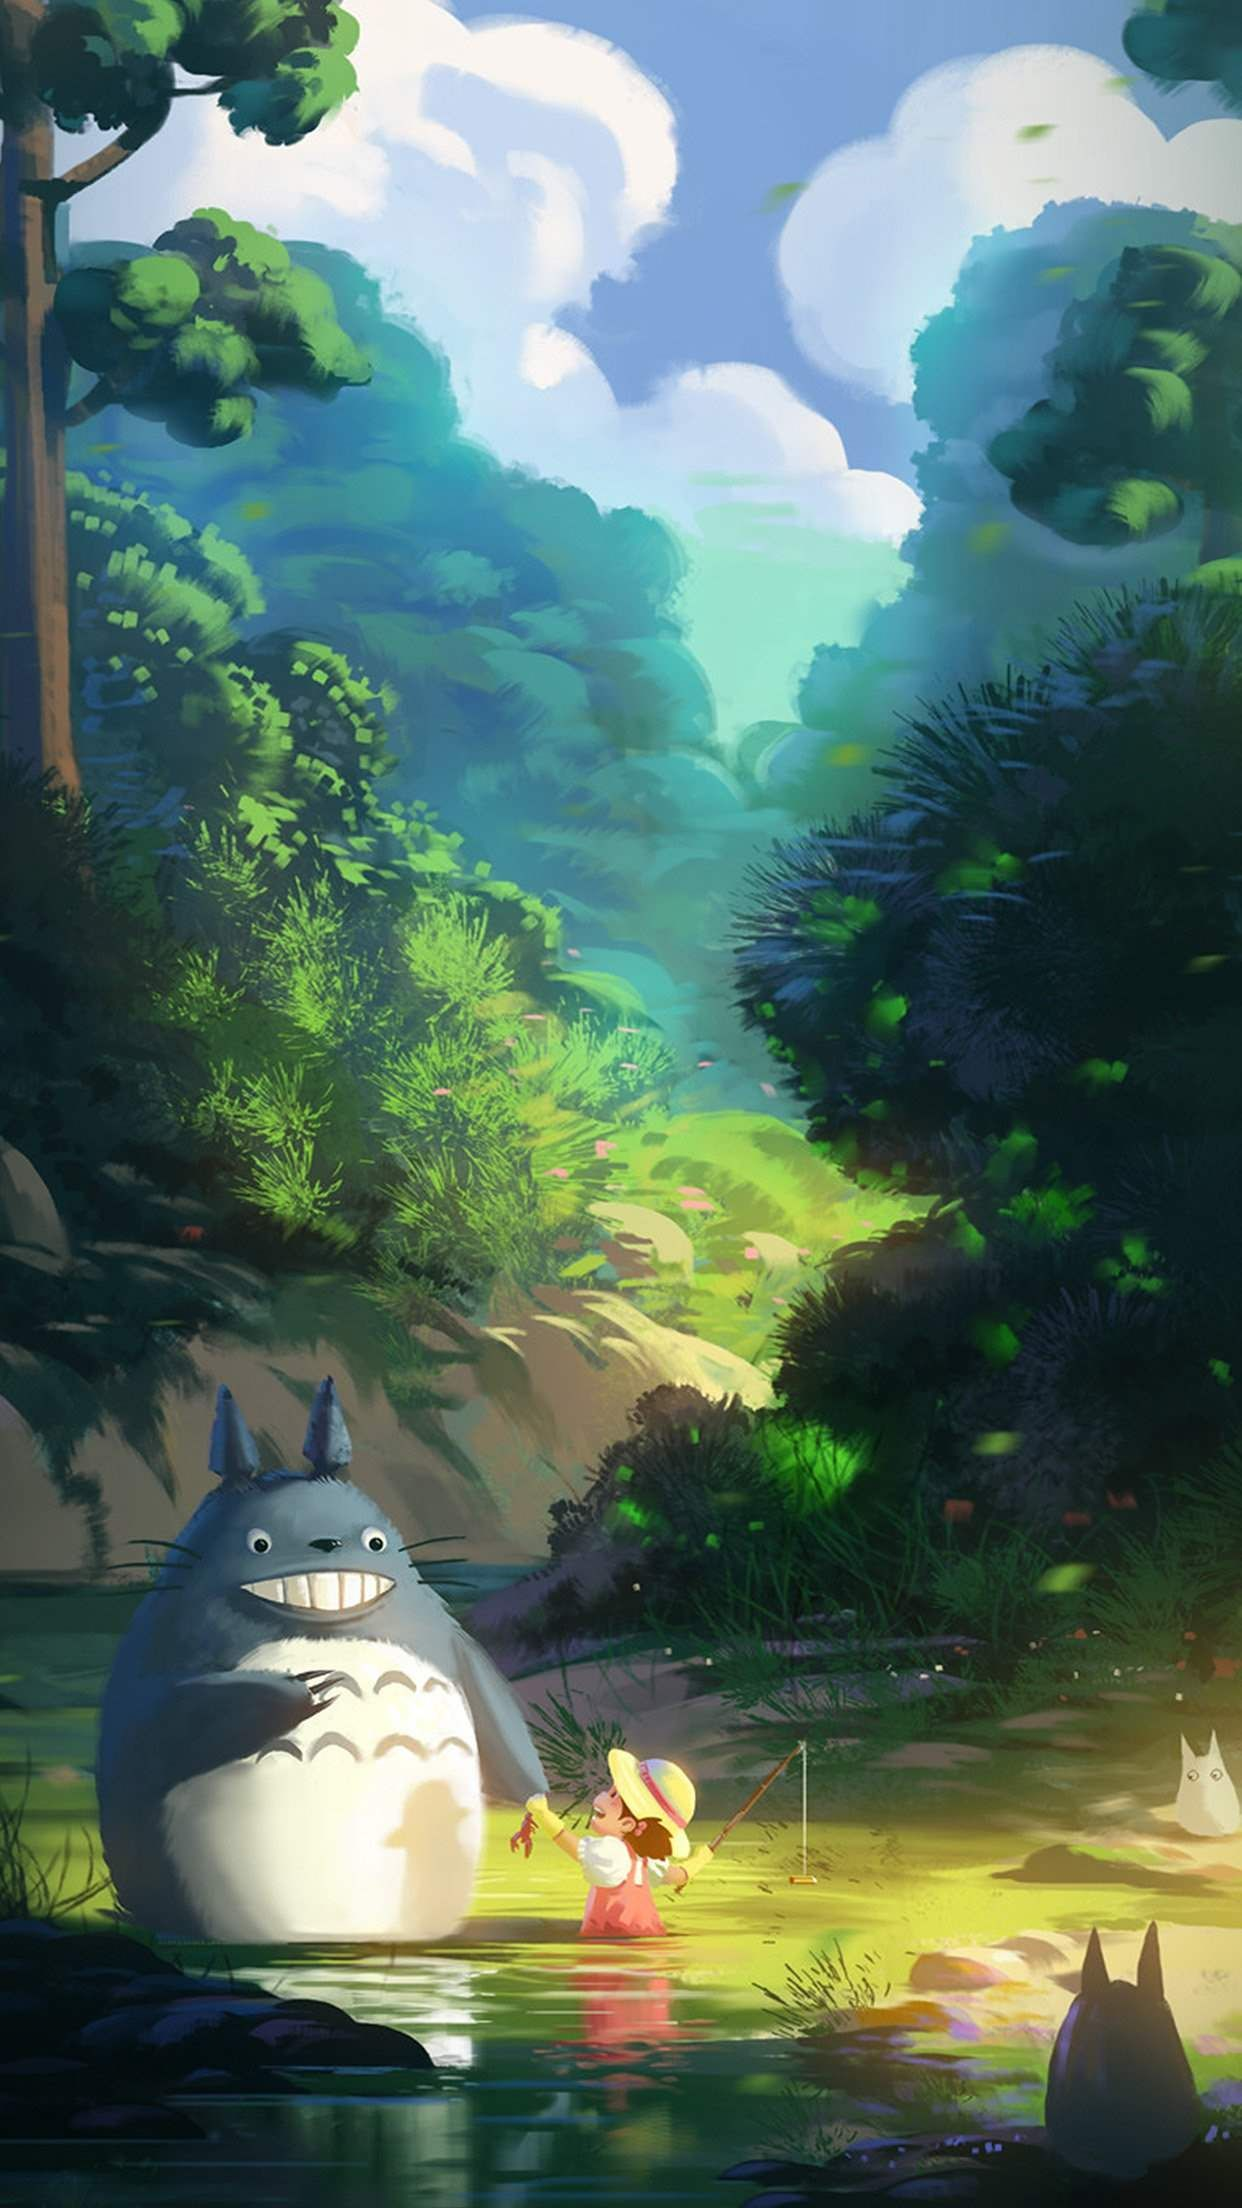 Download Mega Collection Of Cool Iphone Wallpapers Studio Ghibli Art Anime Wallpaper Anime Wallpaper Live